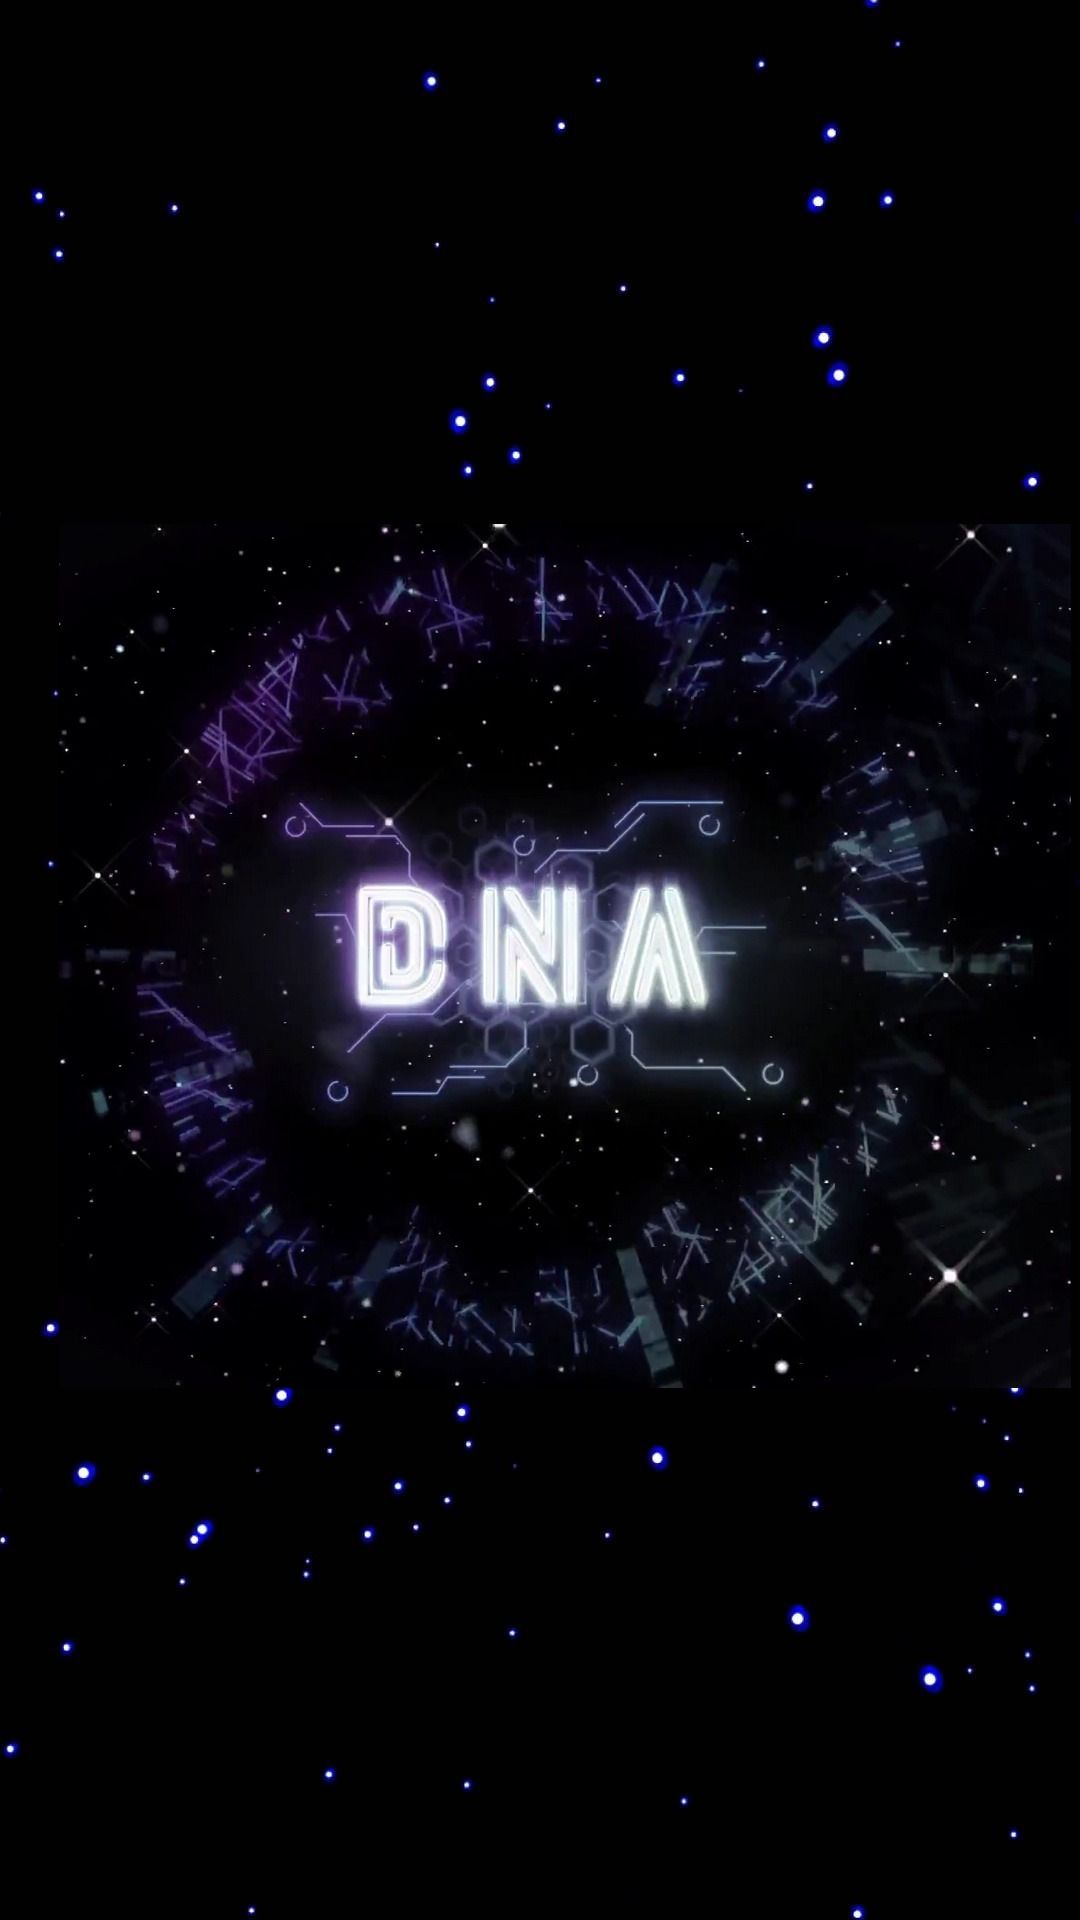 Bts Dna Neon Tap To See More Bts Wallpapers Mobile9 Iphone 8